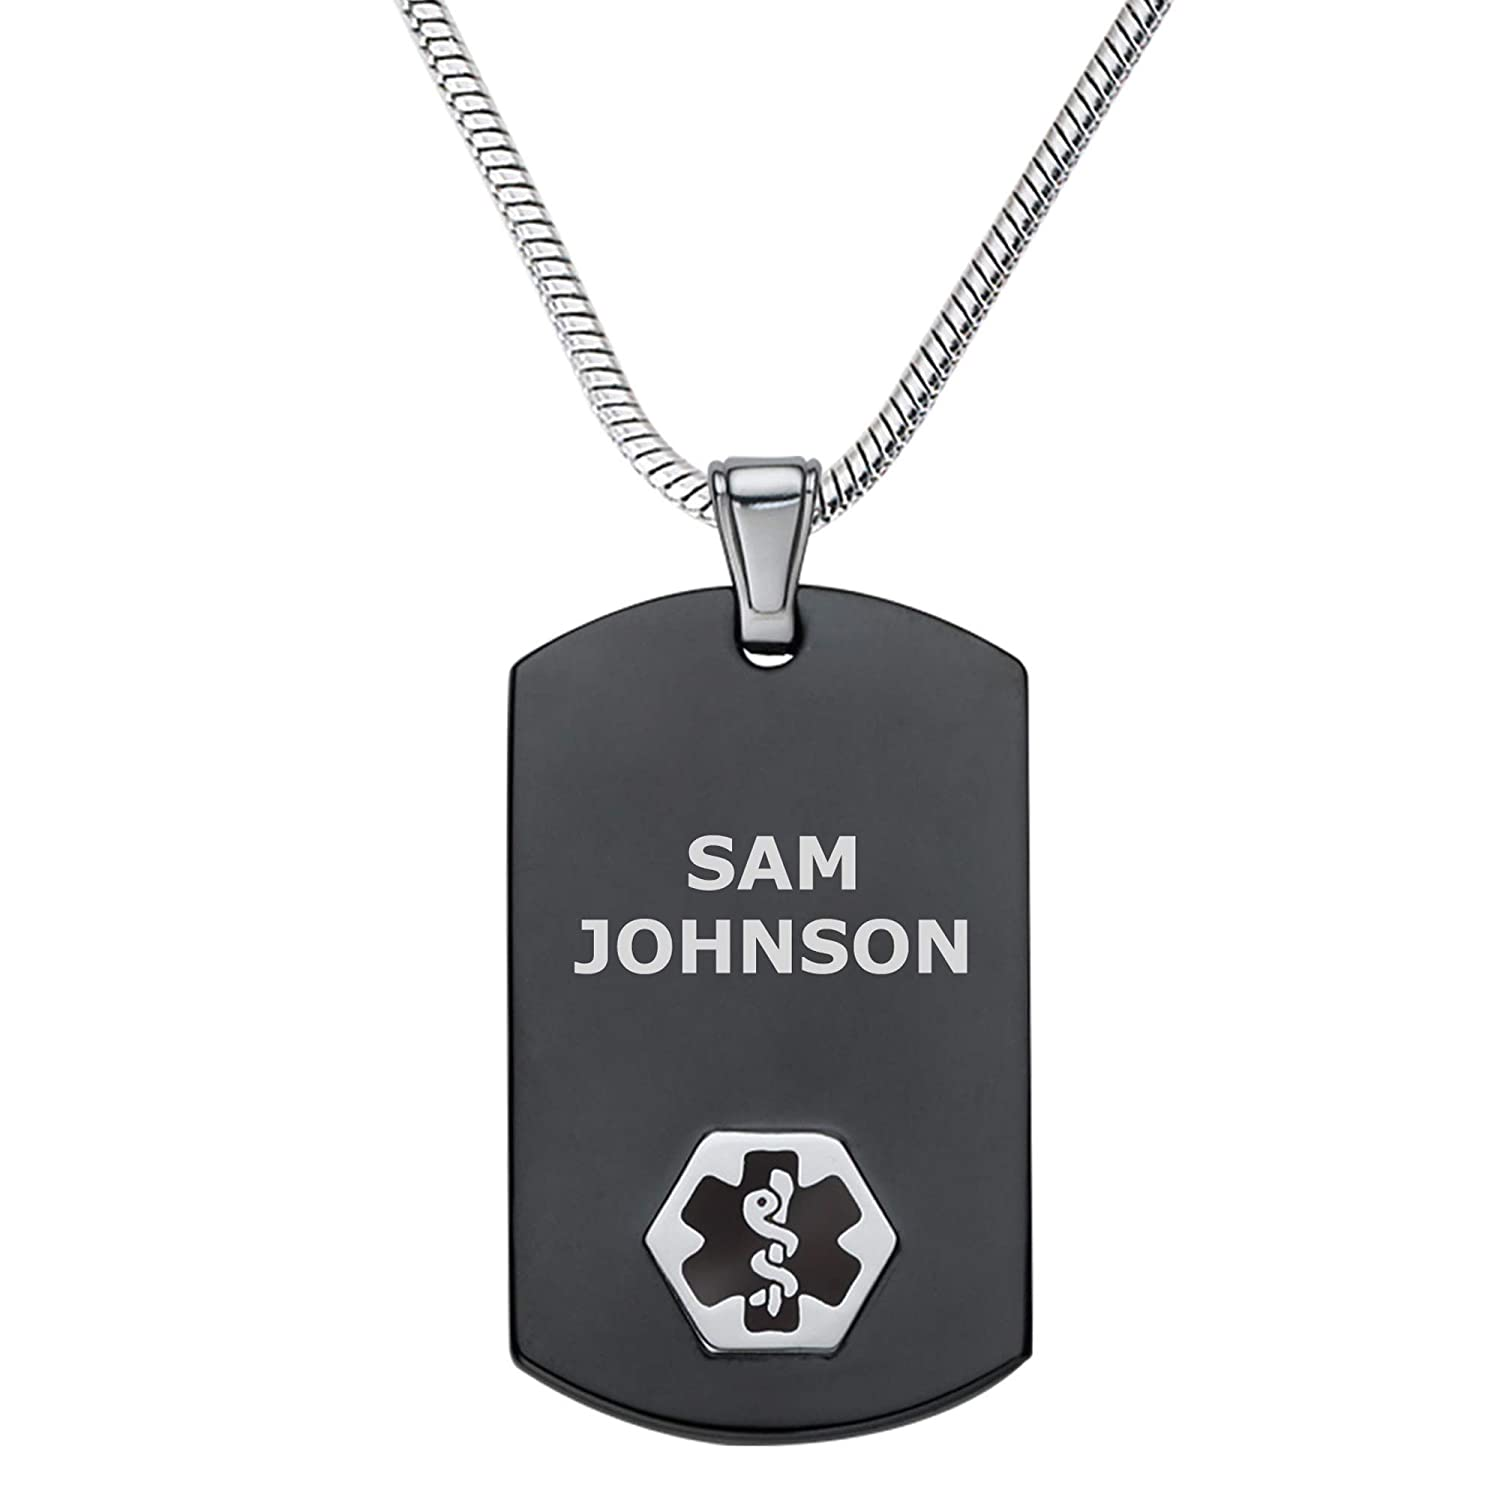 Divoti Deep Custom Laser Engraved Stainless Steel Medical Alert Necklace for Men, Chic Black Silver Medical ID Necklace, Medical Dog Tag w Free Engraving – 24 28 Various Chain -Color Options